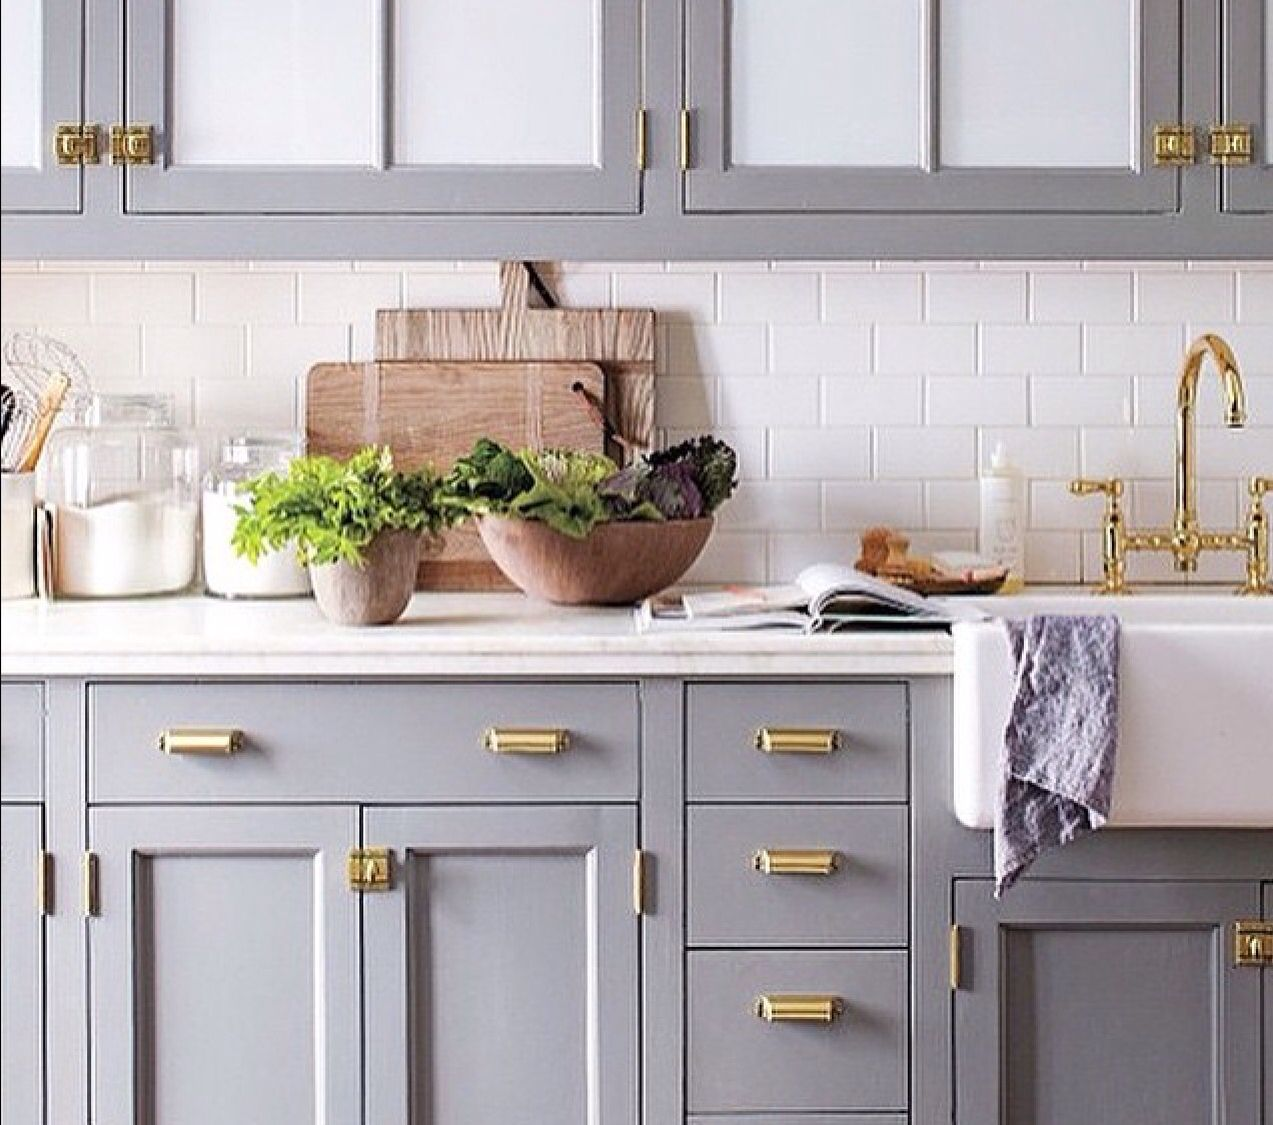 Dove Grey And Brass Handles Kitchen Cabinets Grey And White Grey Kitchen Cabinets Small Kitchen Solutions